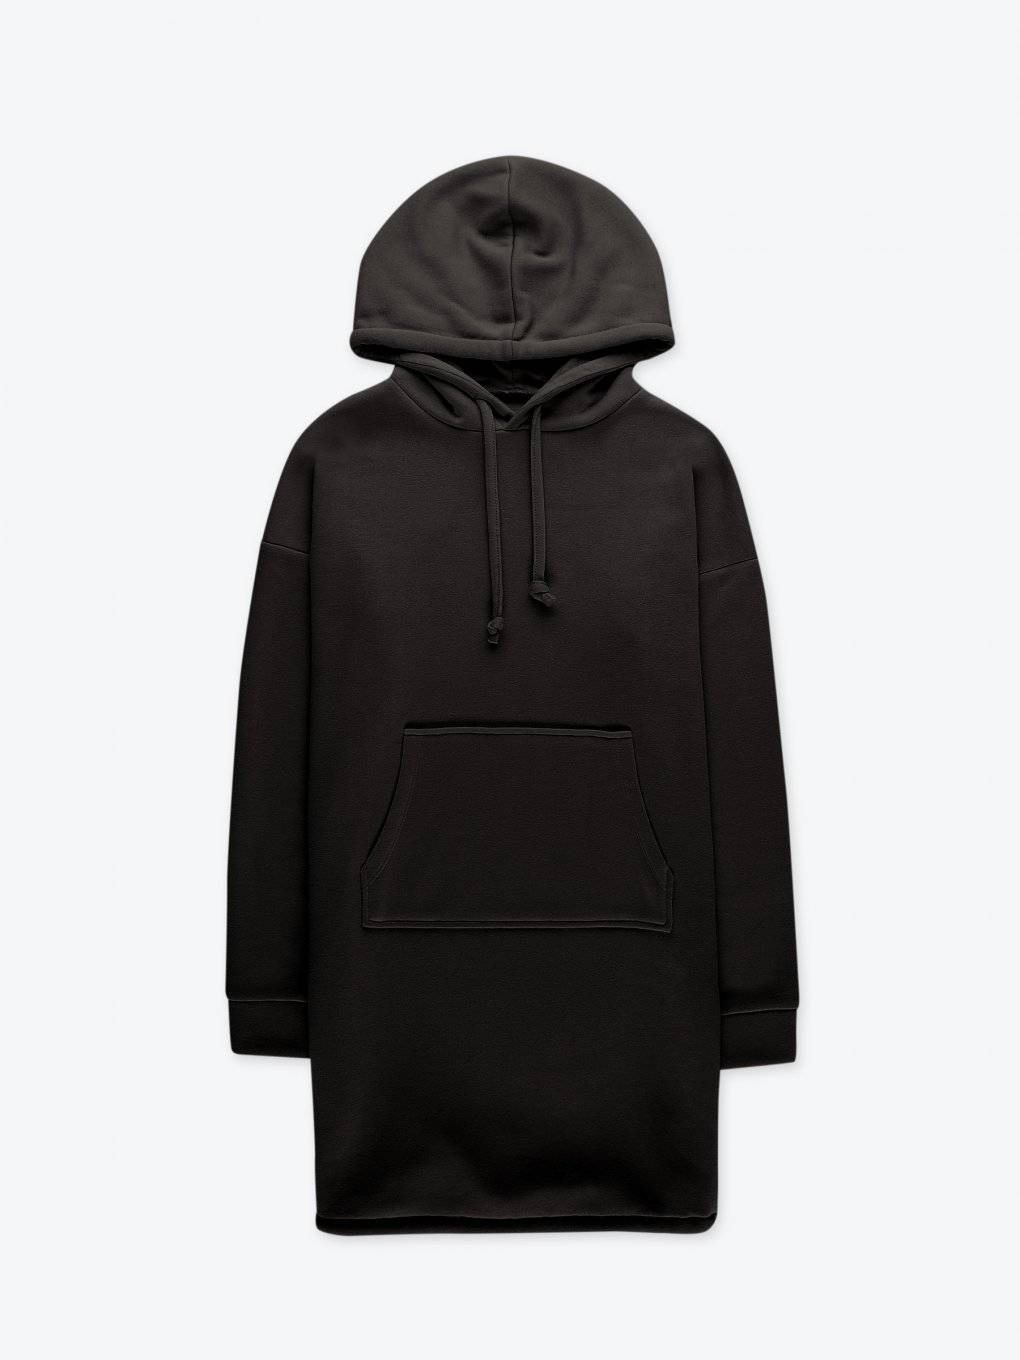 Longĺine hoodie with kangaroo pocket